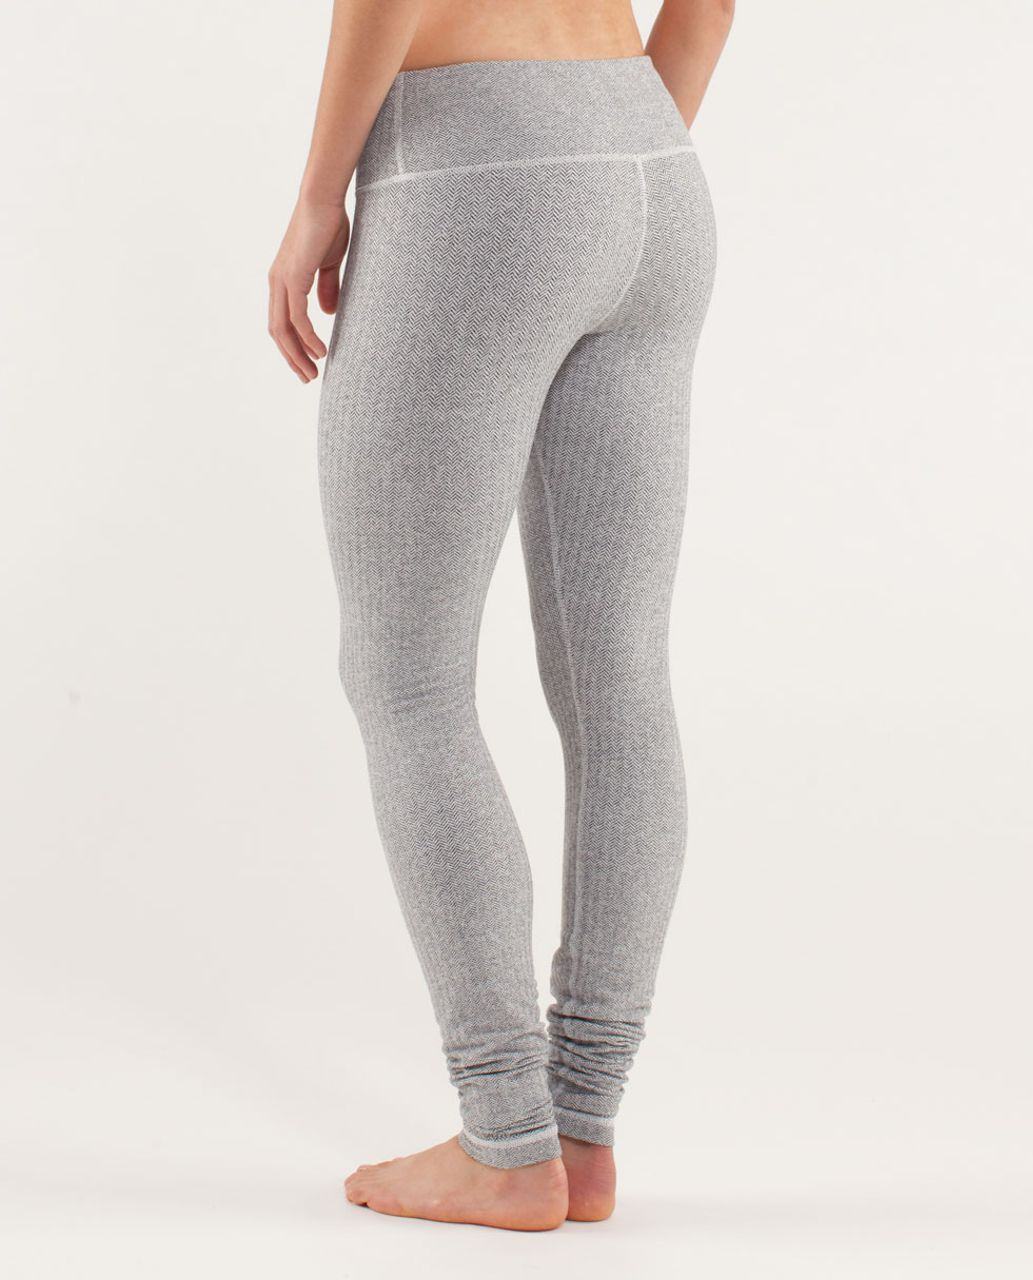 c077f86694 Lululemon Wunder Under Pant - Herringbone White Black / Black - lulu  fanatics